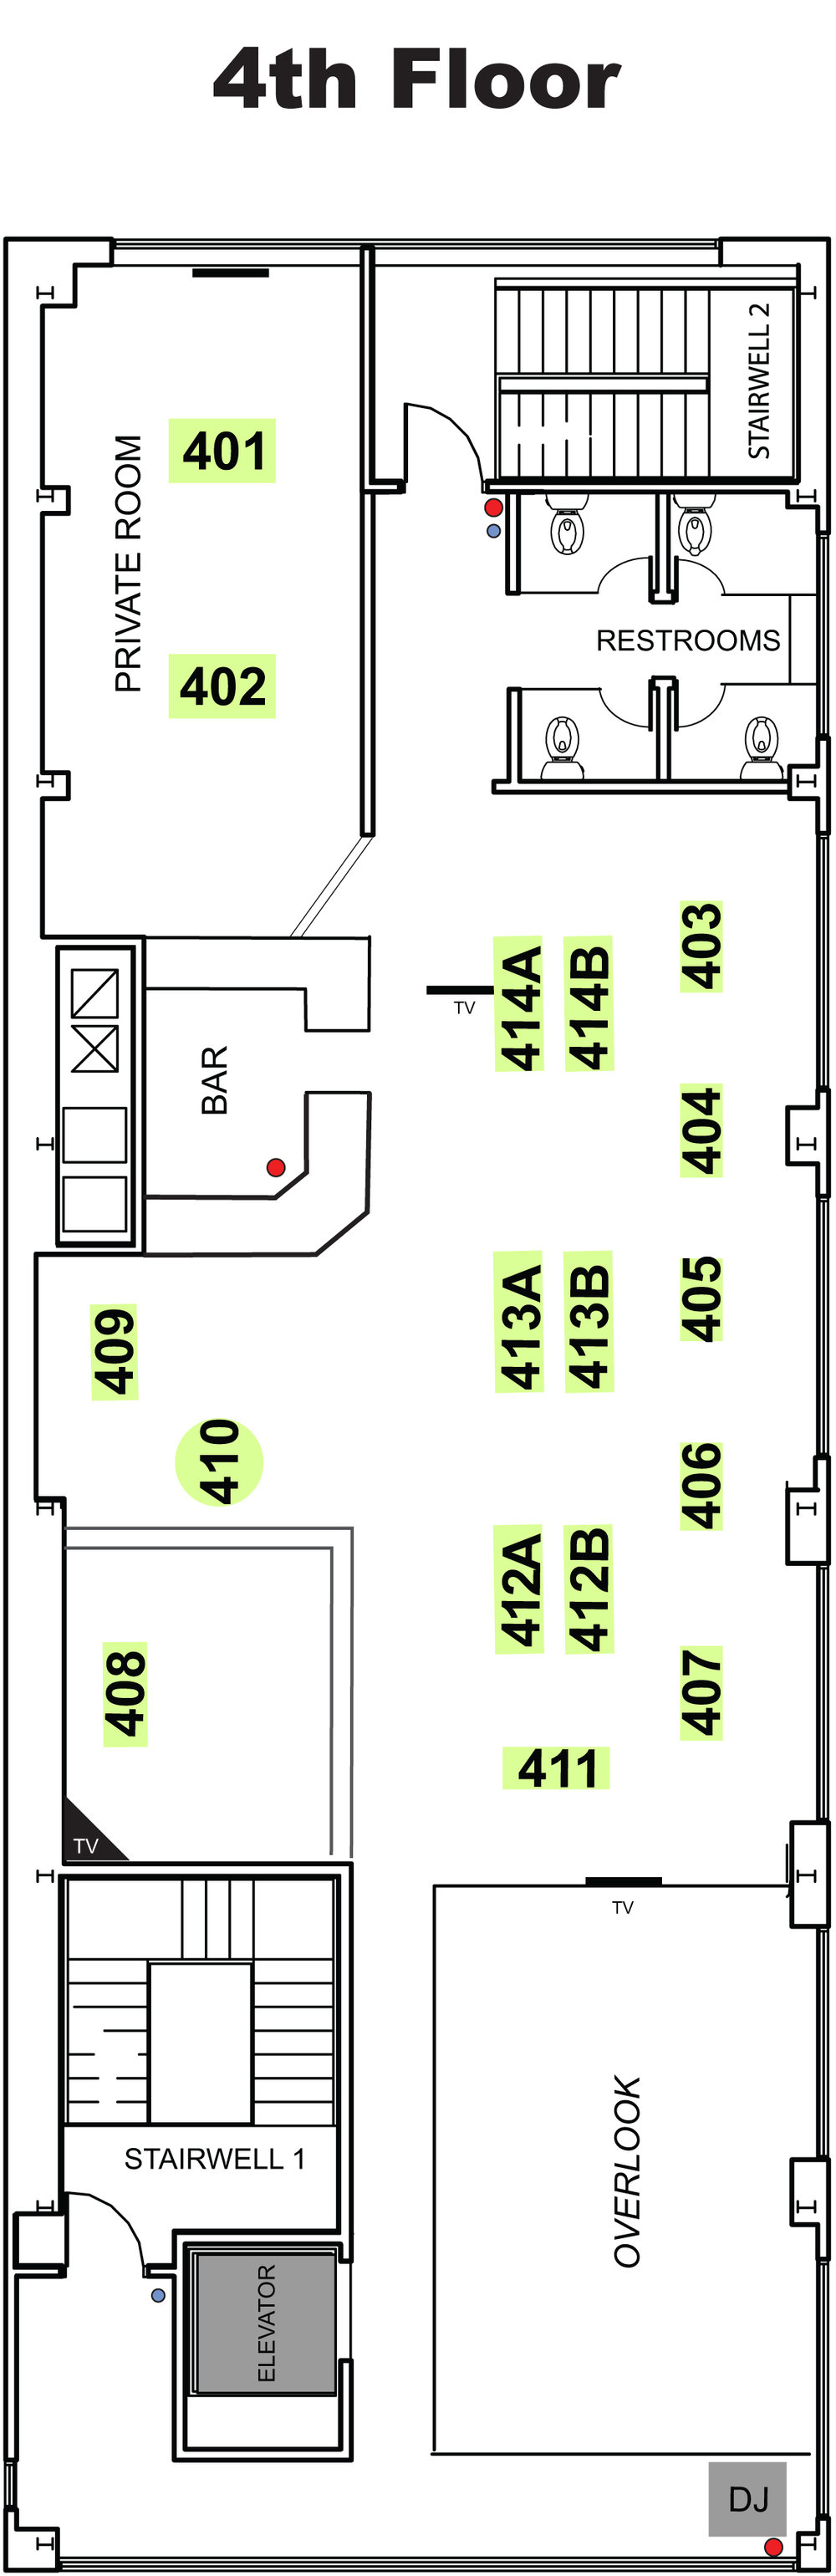 Dinner Floor Plan June 2018 v2-4.jpg